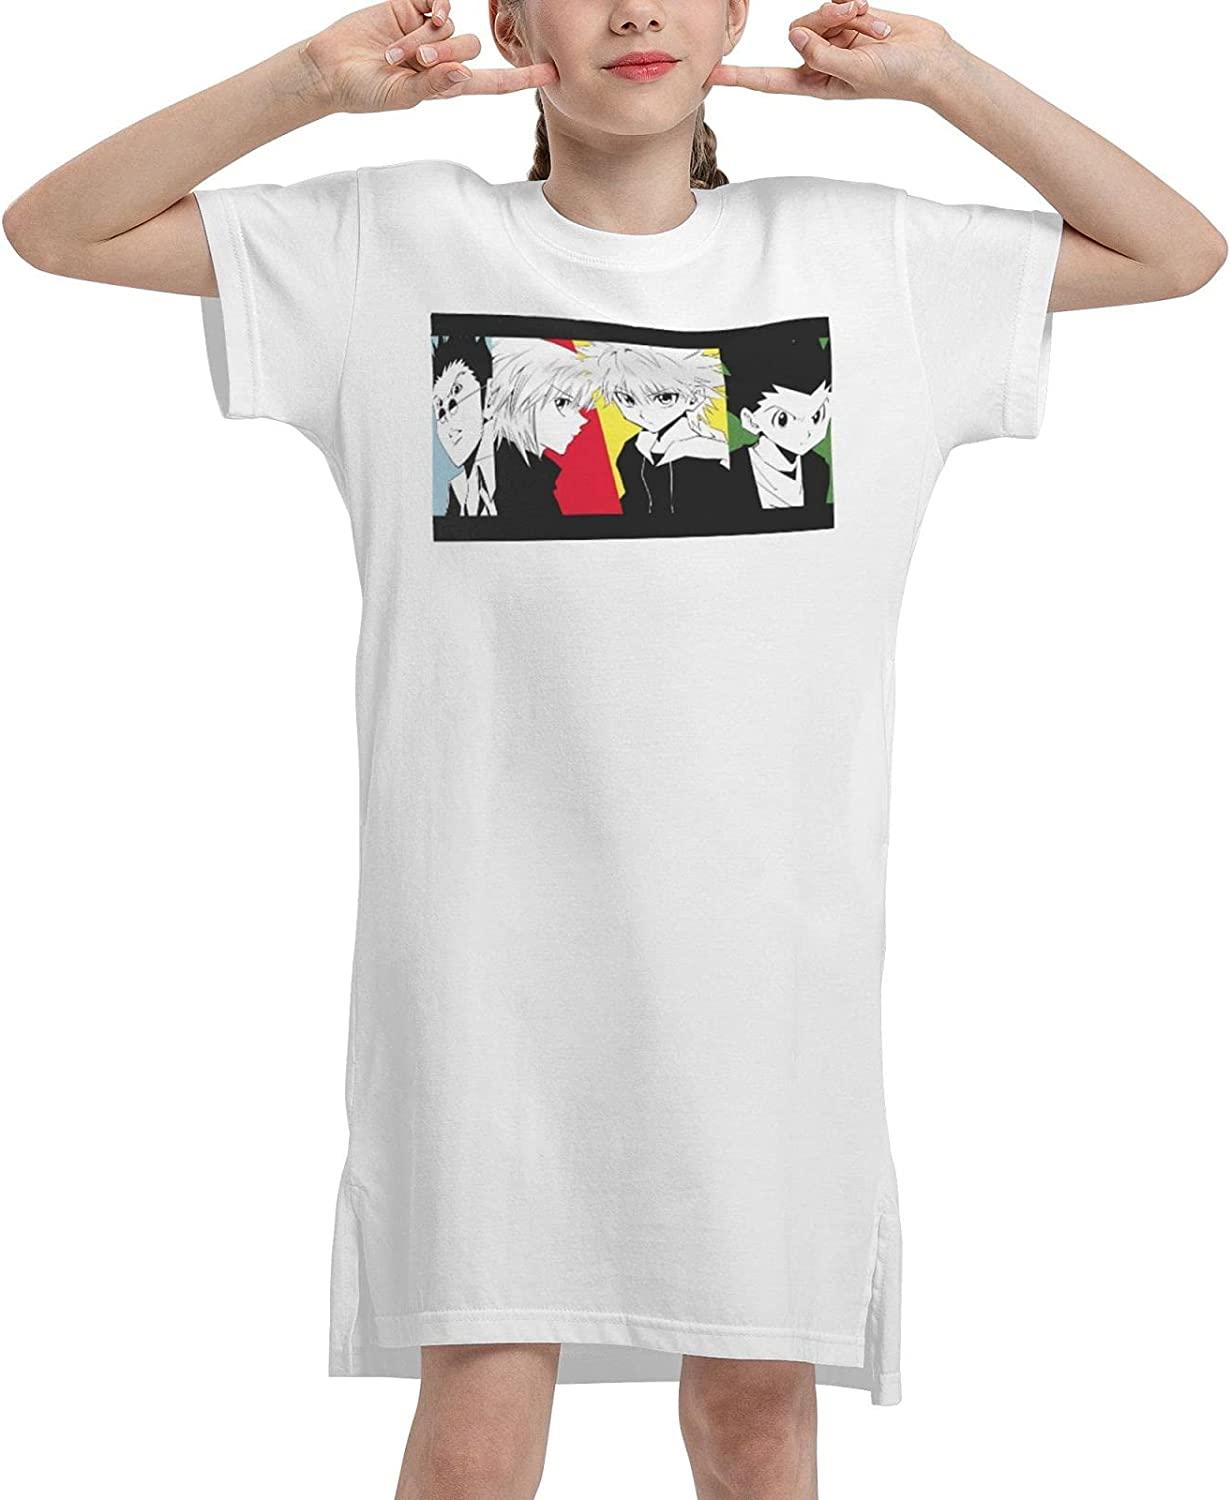 Hunter X Hunte Girls Short Sleeve Dress Casual Swing Twirl Skirt for Holiday Theme Party 7-12 Years